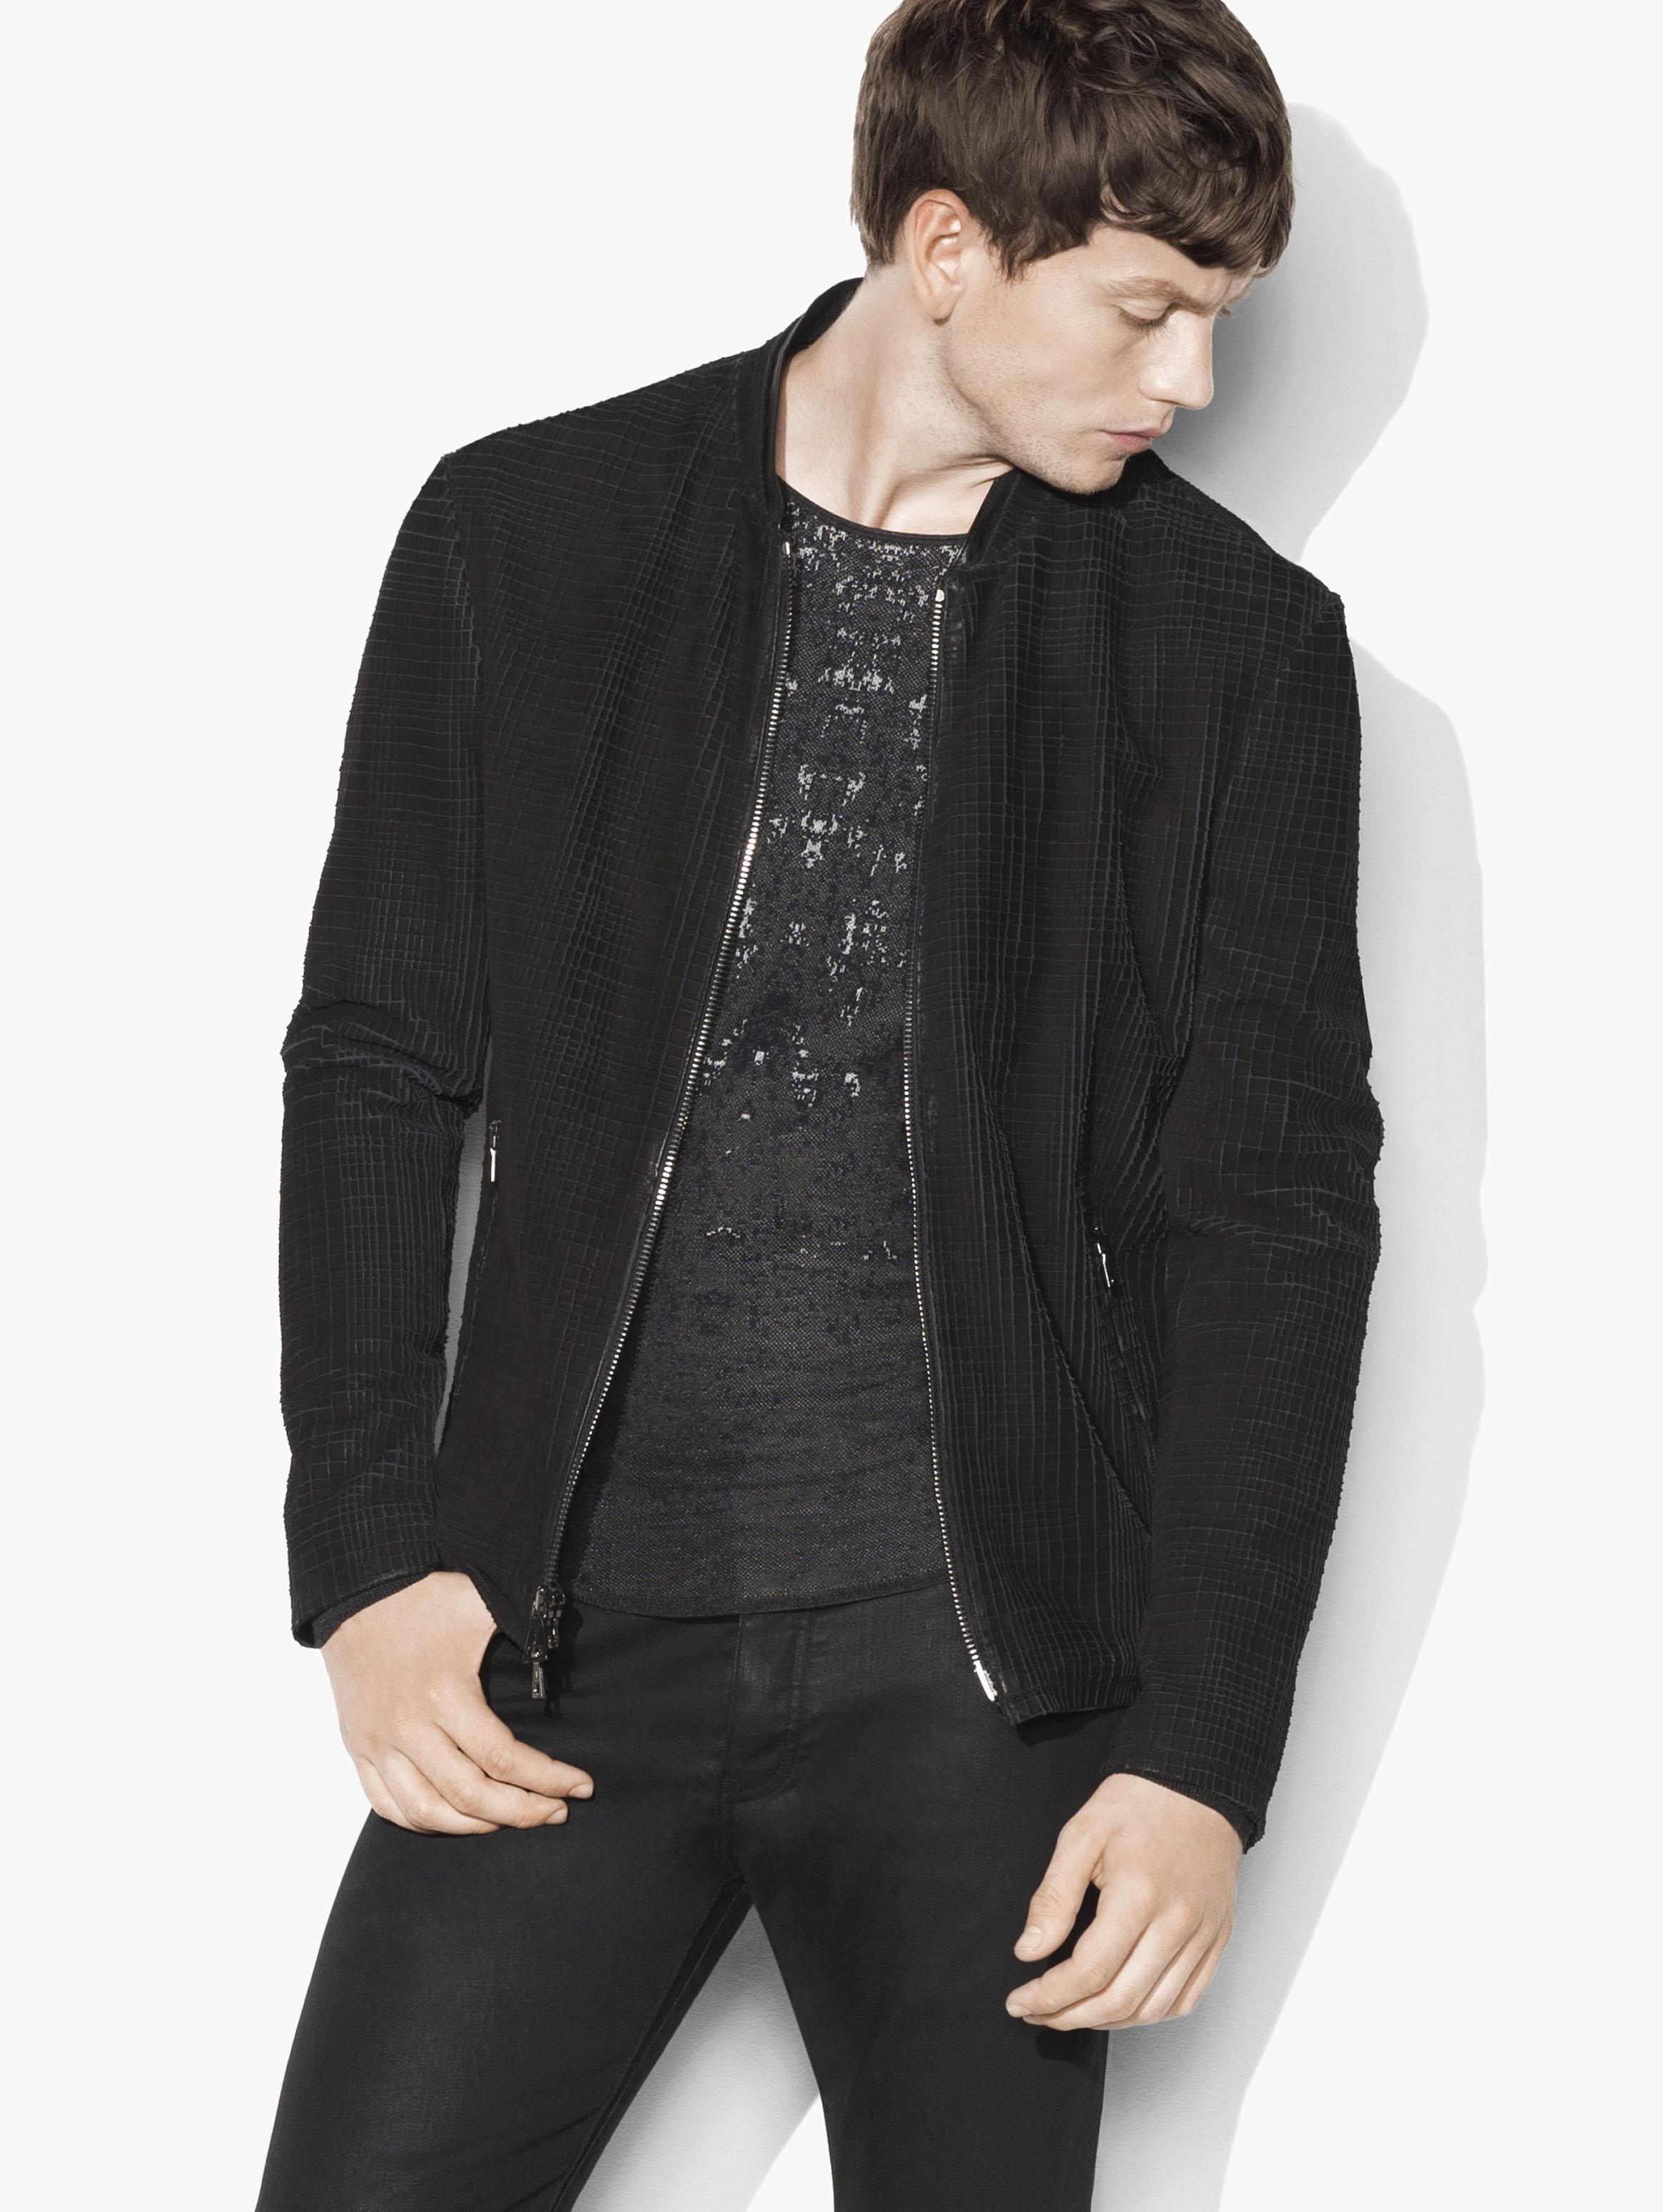 Laser-Cut Calf Skin Jacket